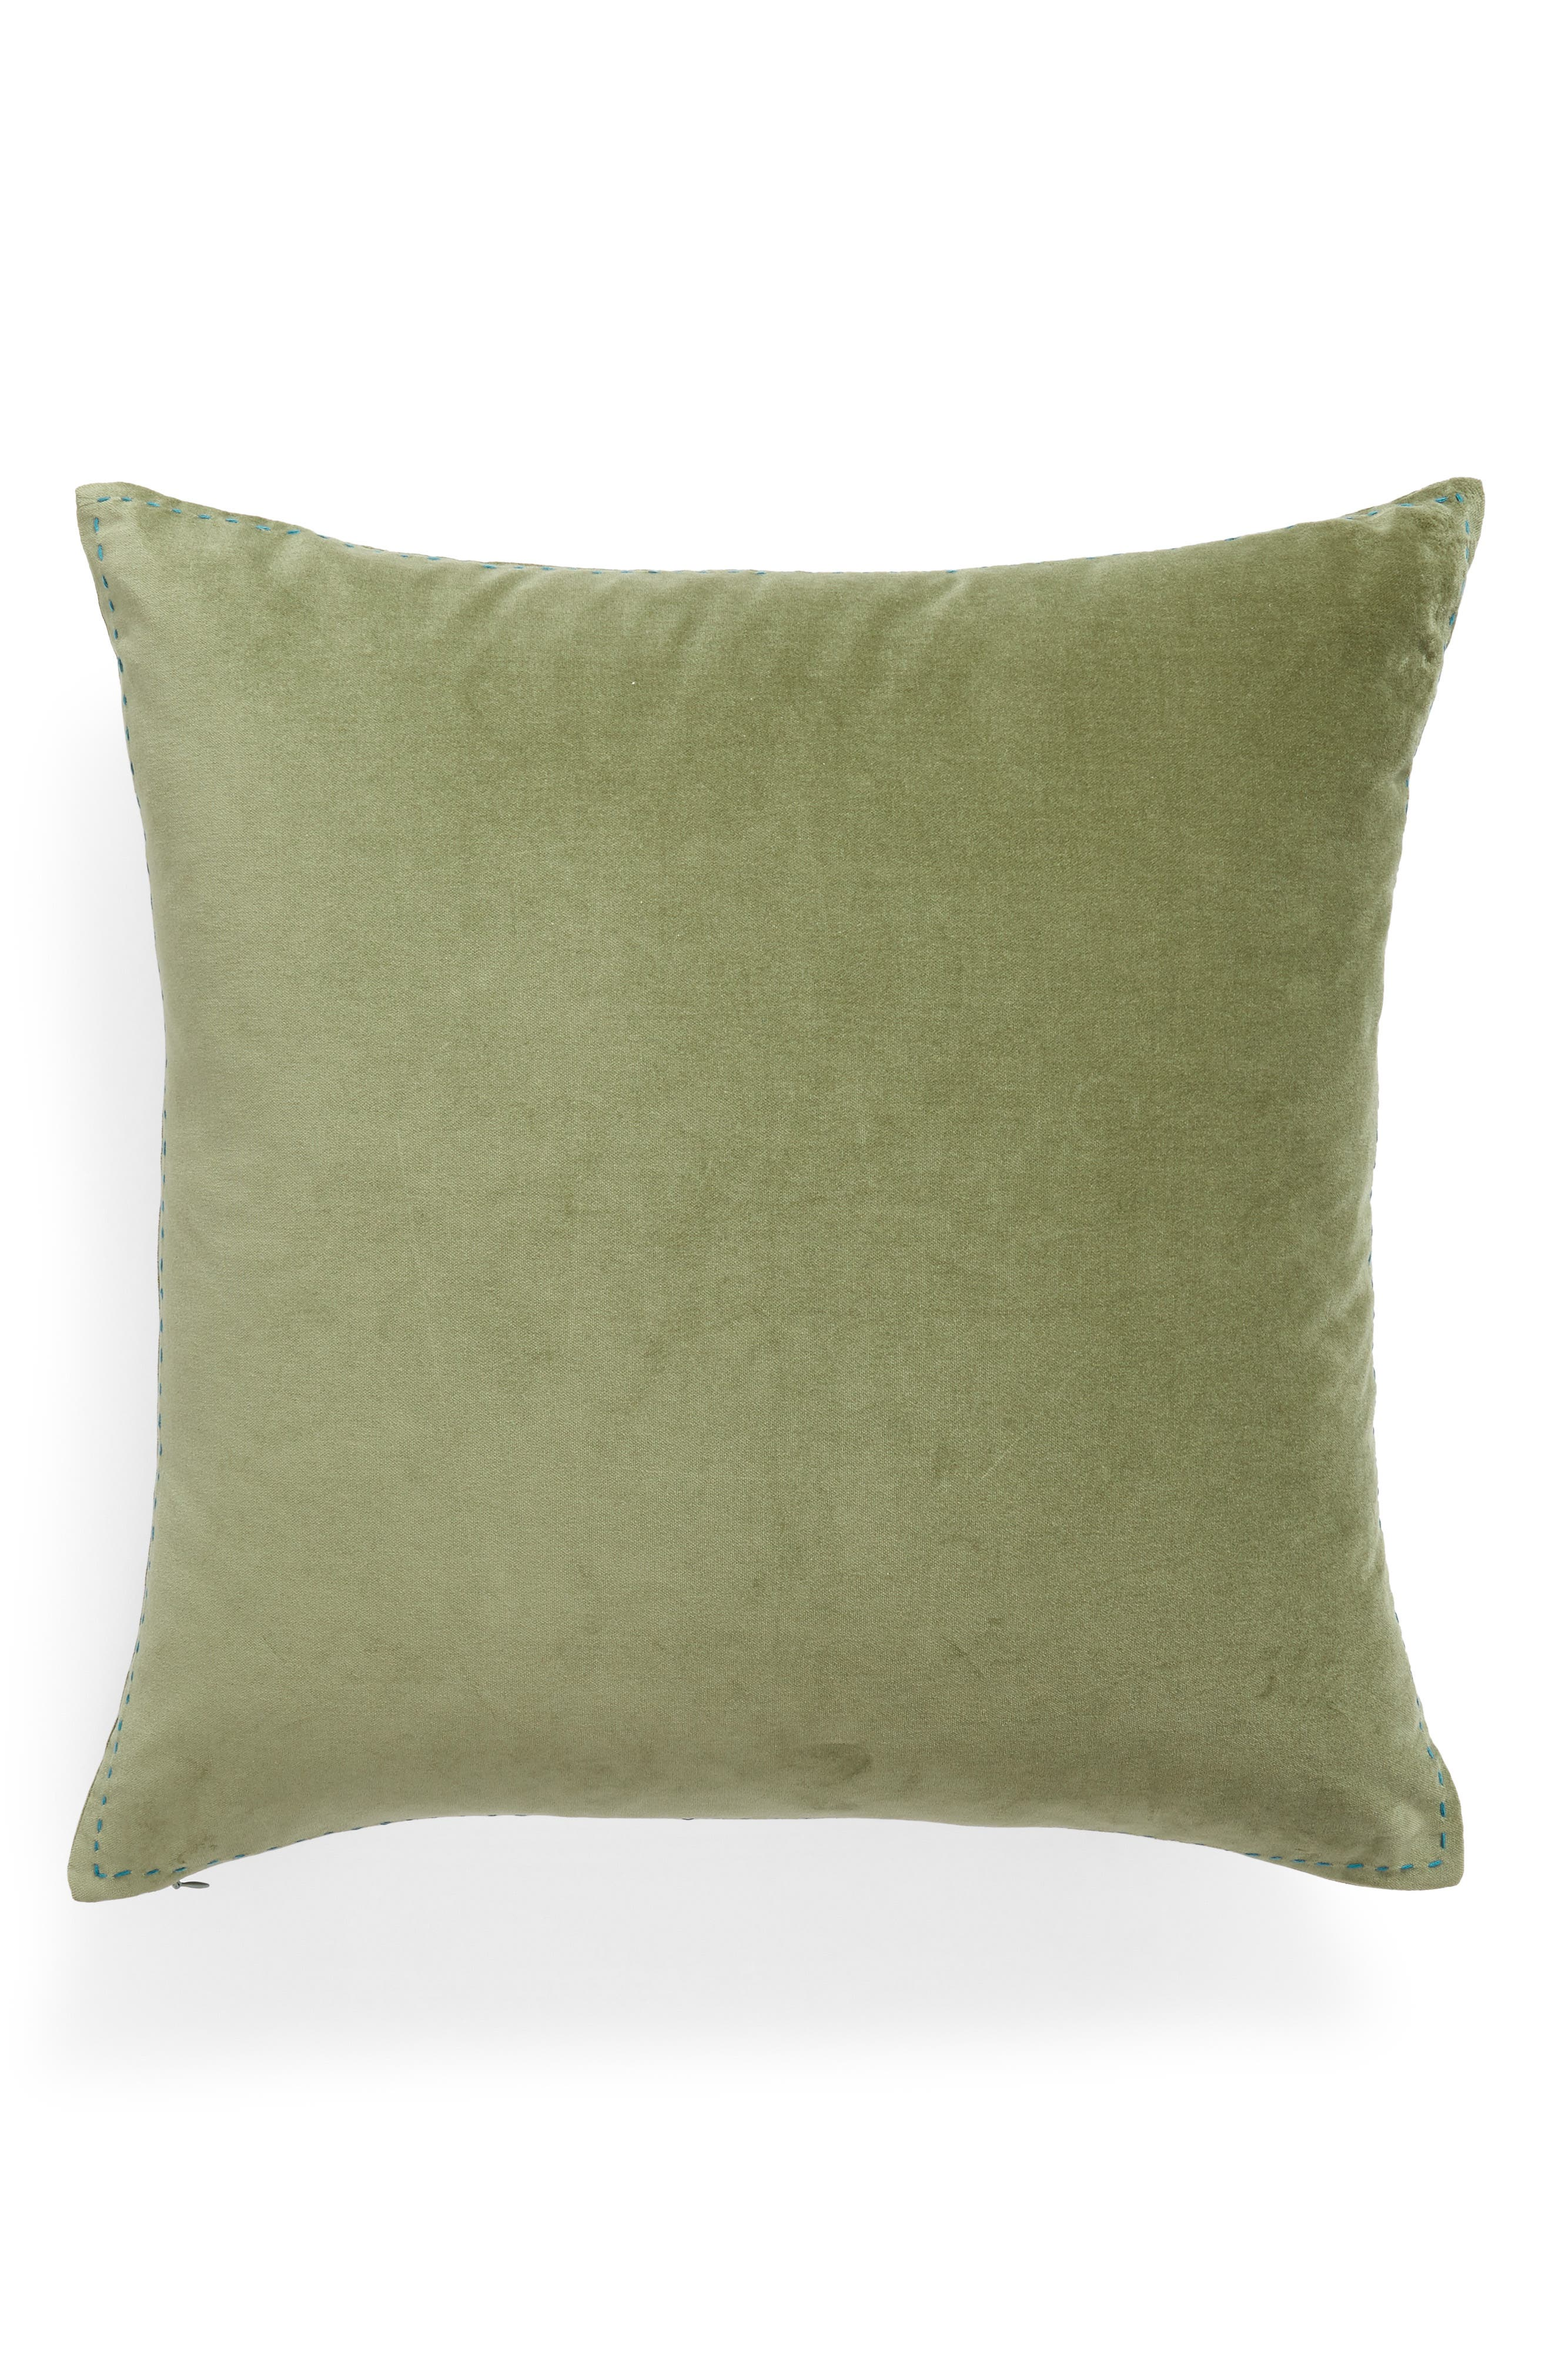 Ticking Border Accent Pillow,                         Main,                         color, 300